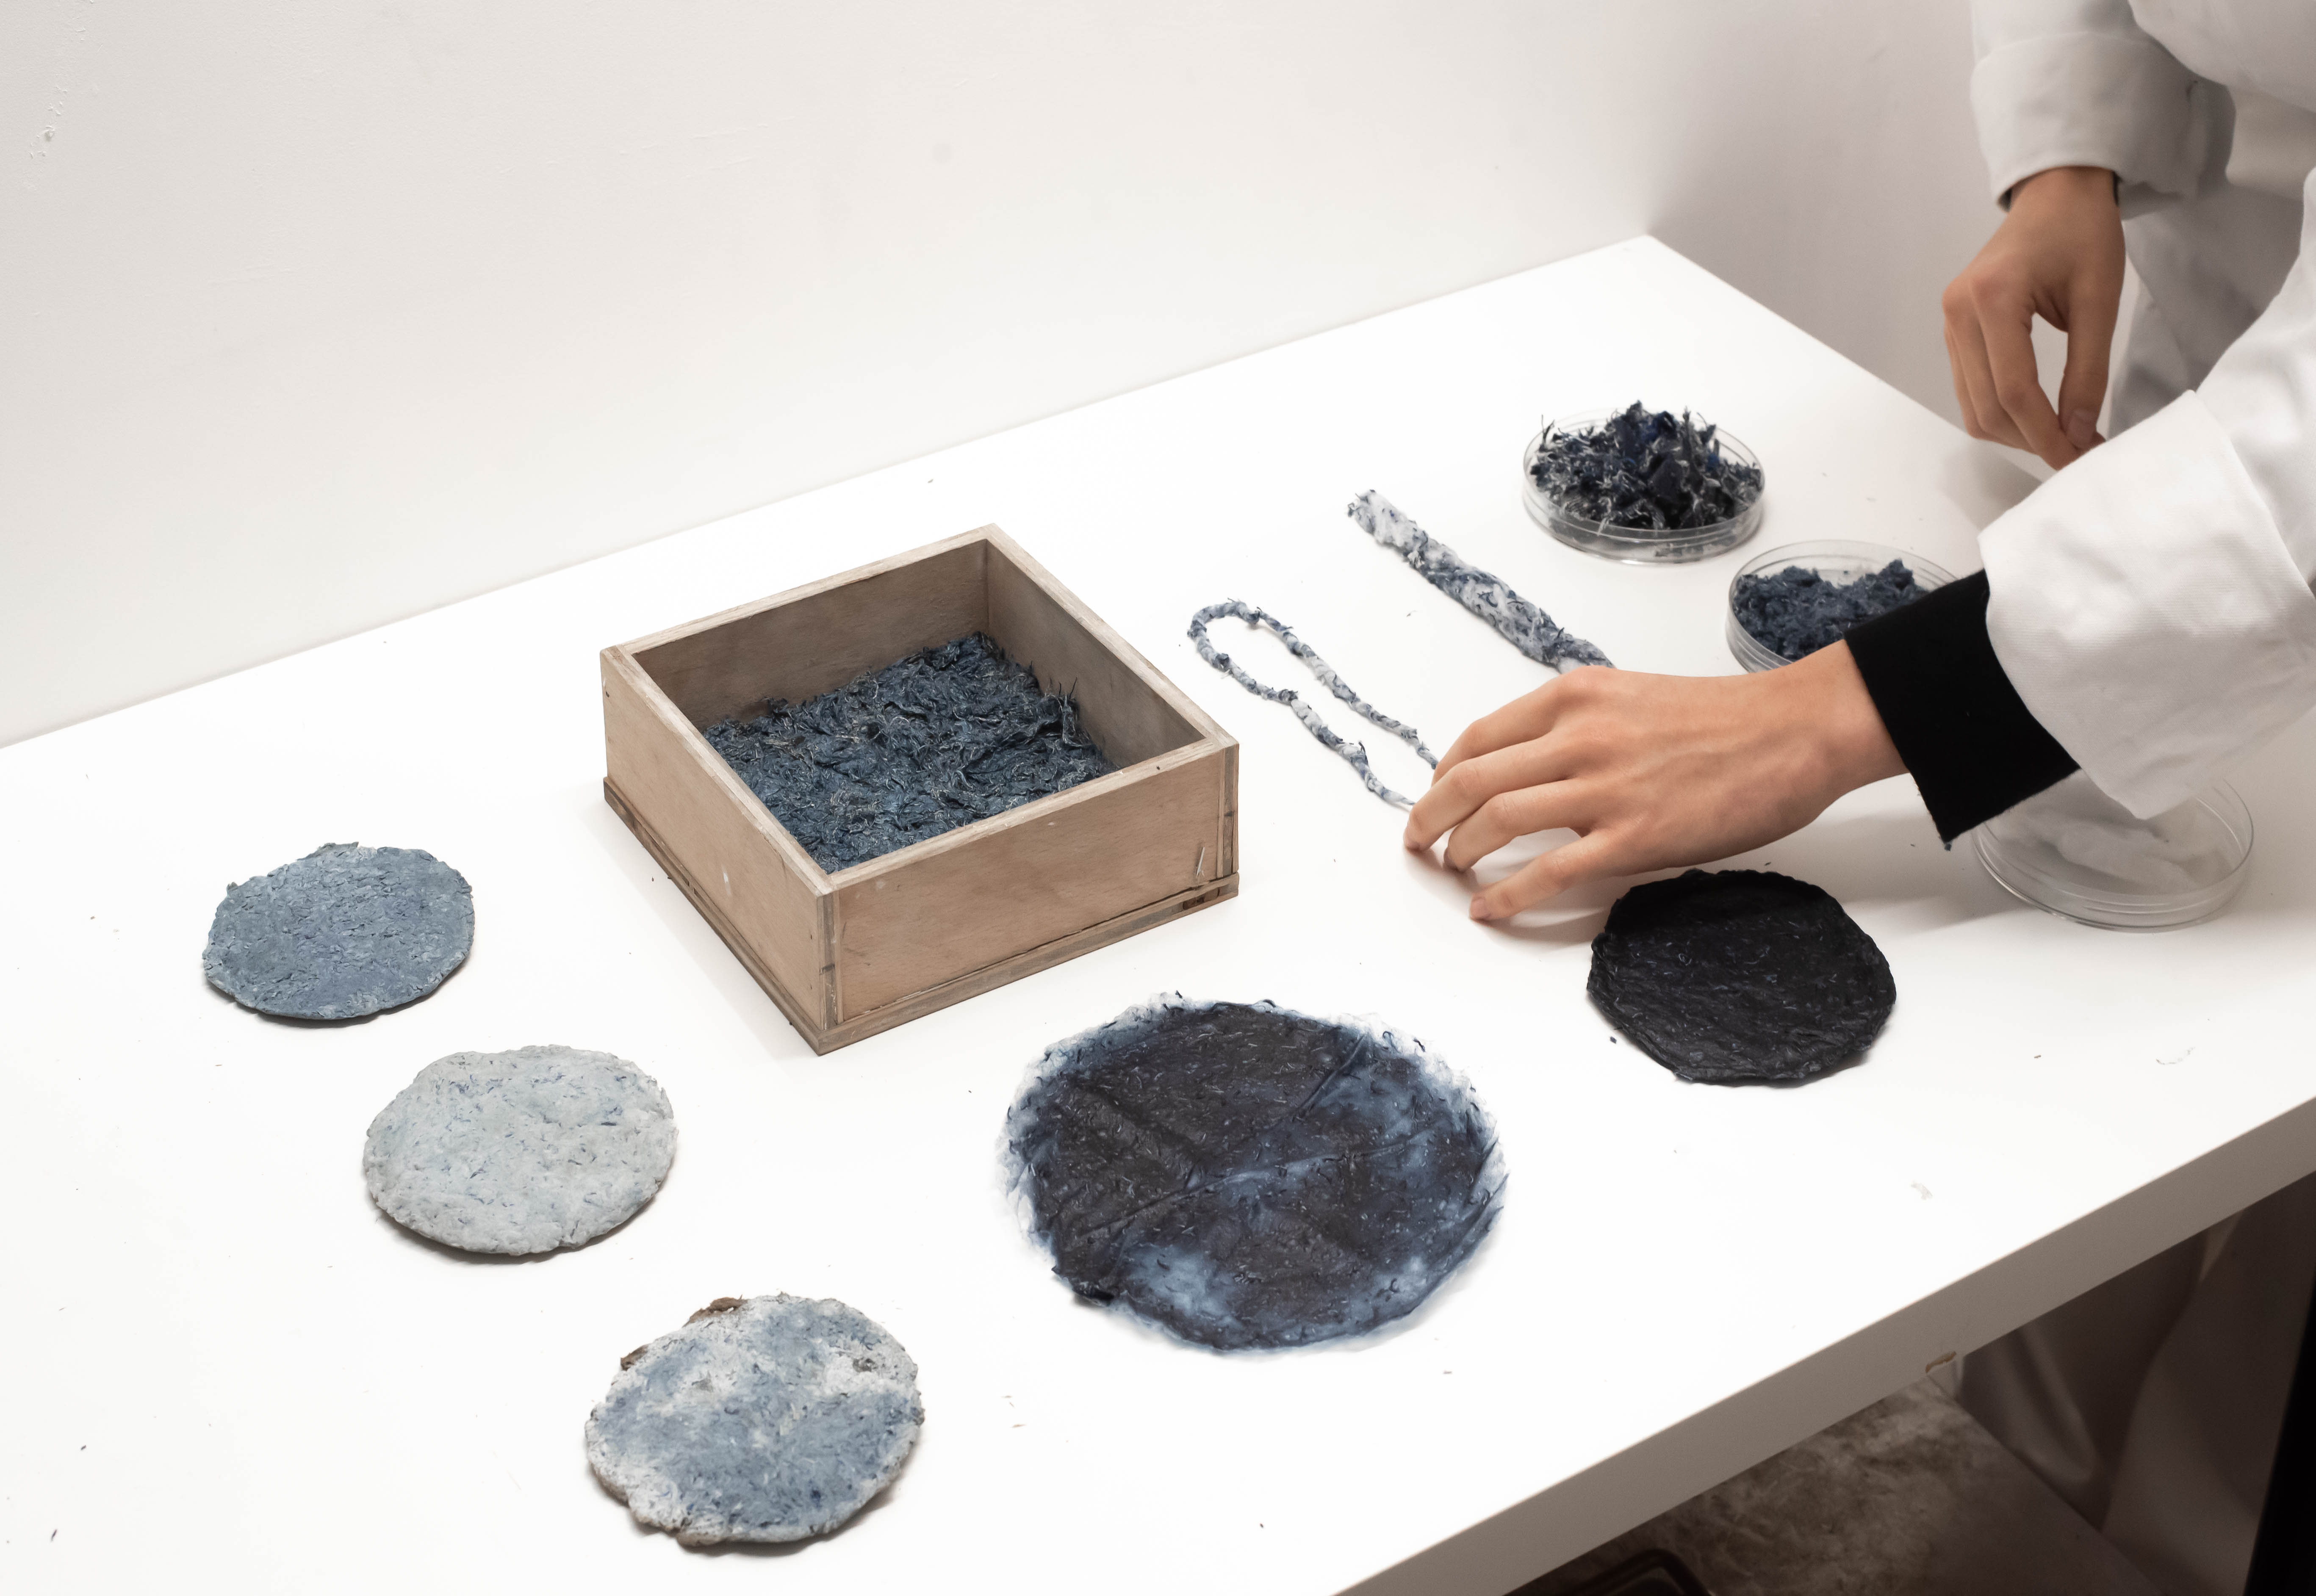 Circular coloured samples aligned on a laboratory table.